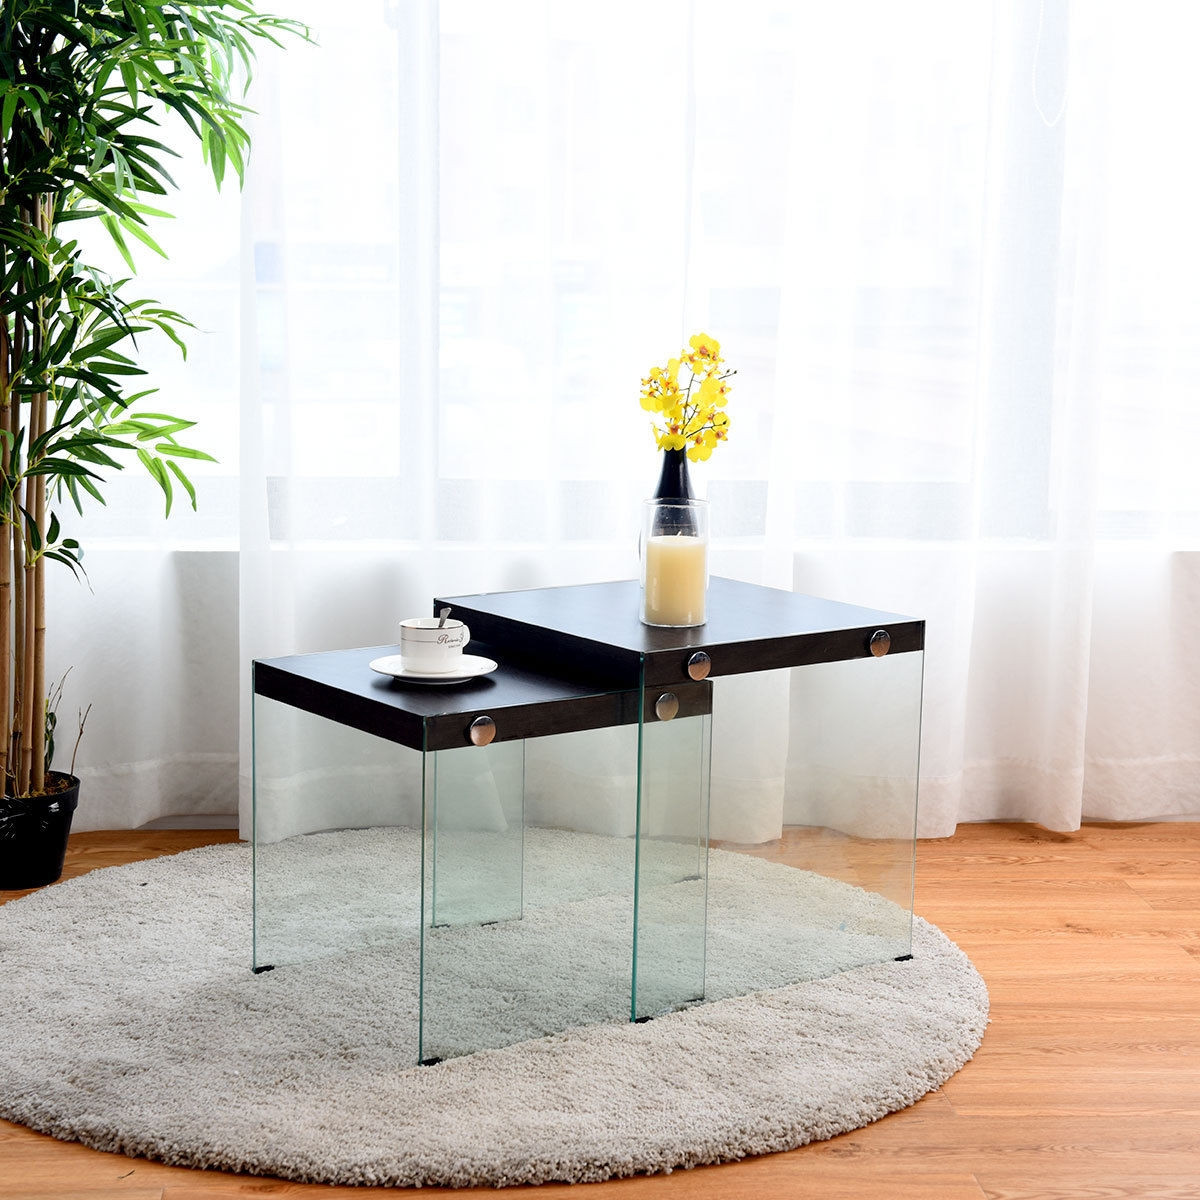 2 Pcs Soho Nesting Coffee Table Stackable Glass Sided Table